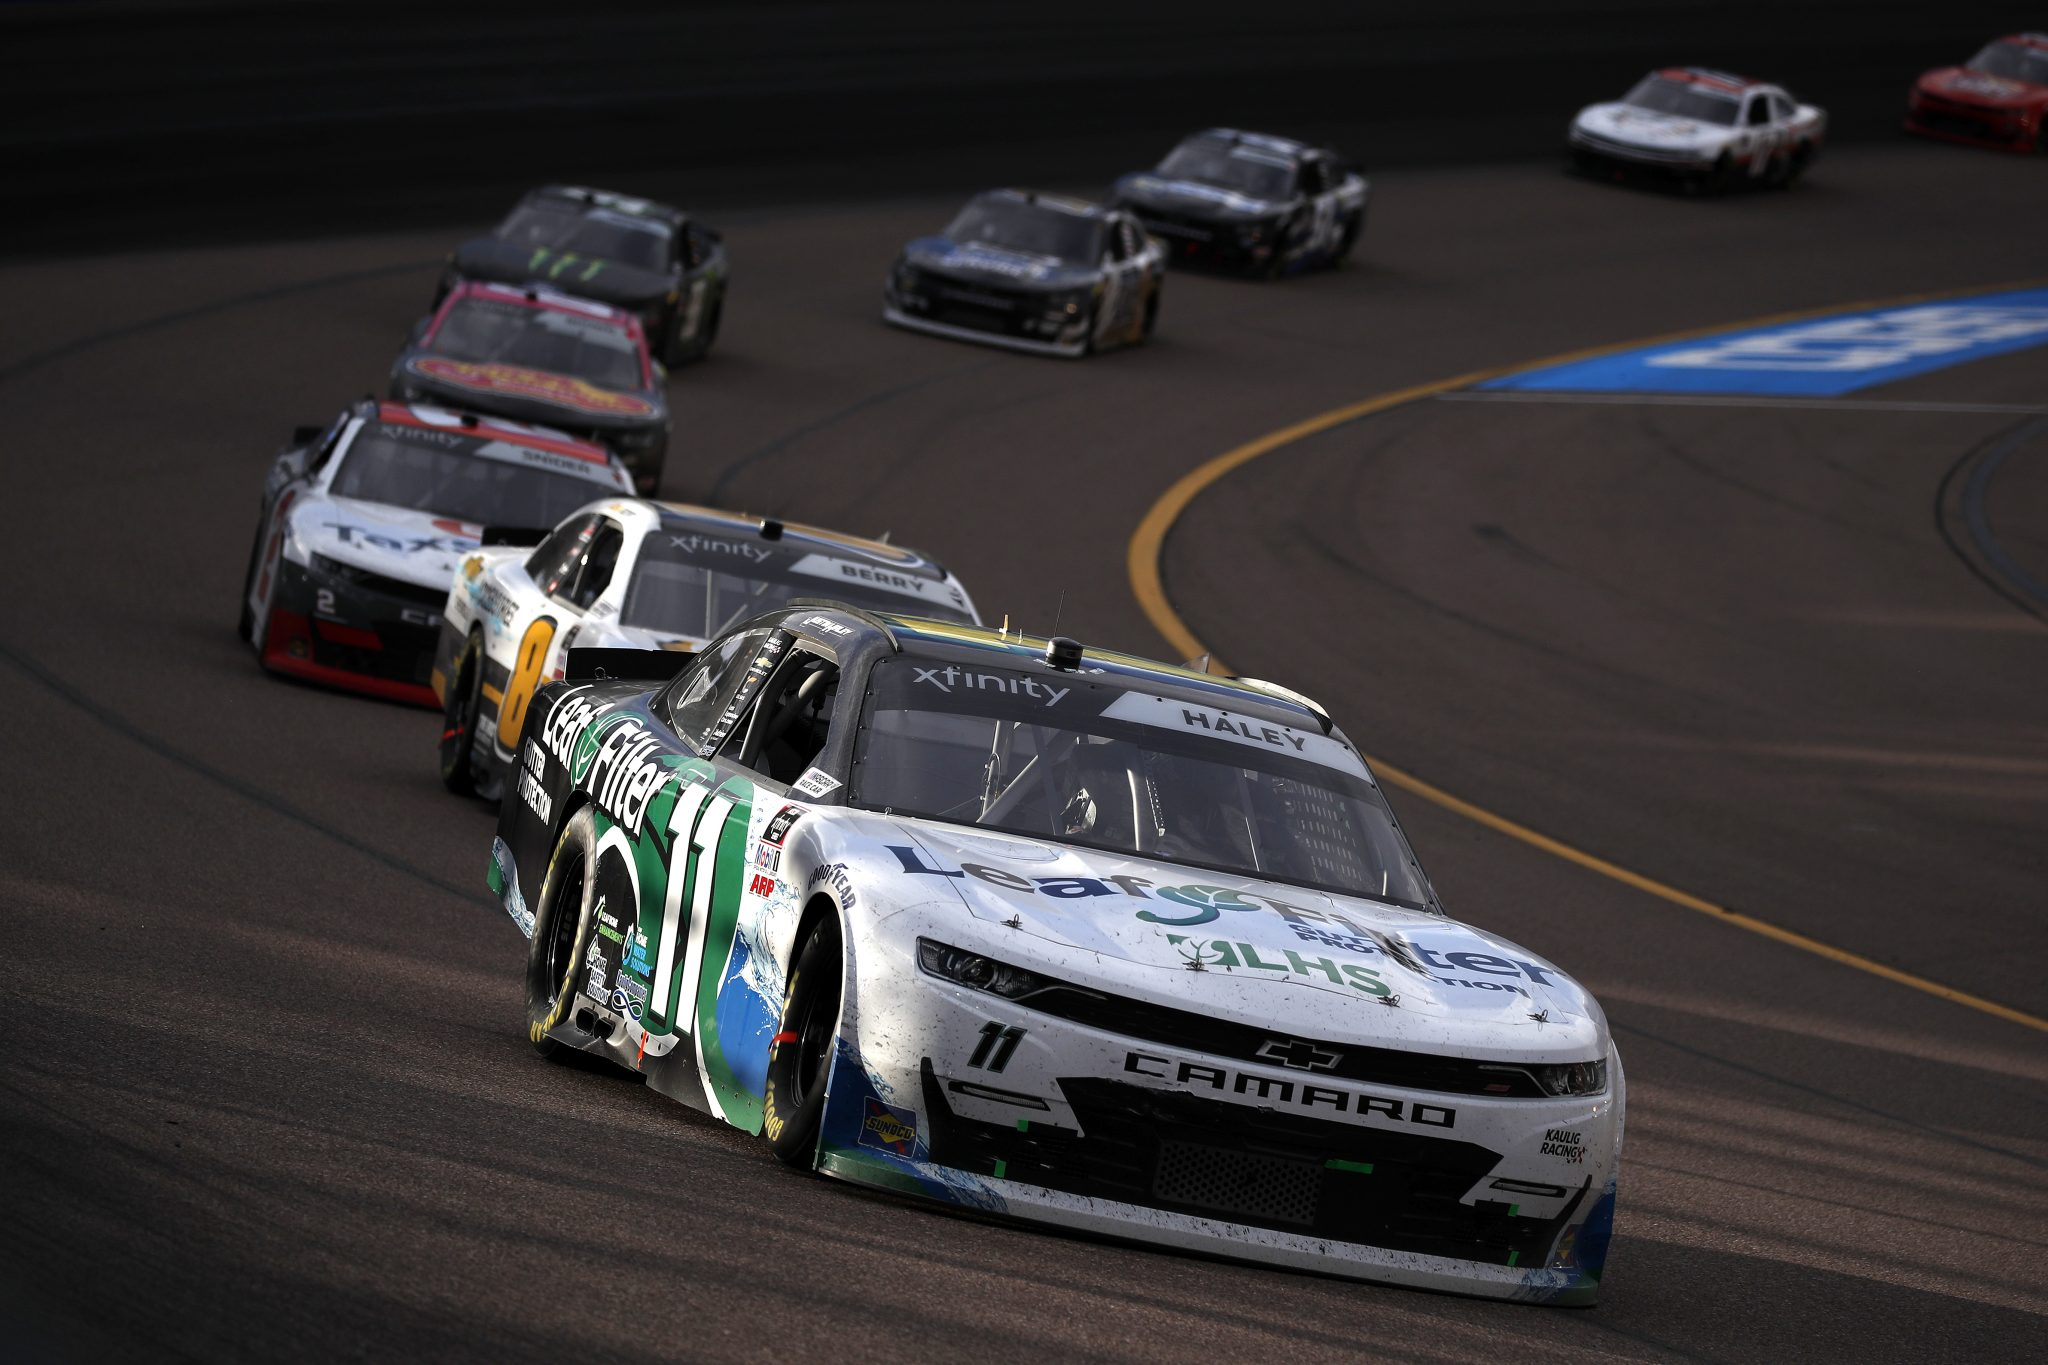 AVONDALE, ARIZONA - MARCH 13: Justin Haley, driver of the #11 LeafFilter Gutter Protection Chevrolet, leads the field during the NASCAR Xfinity Series Call 811 Before You Dig 200 presented by Arizona 811 at Phoenix Raceway on March 13, 2021 in Avondale, Arizona. (Photo by Christian Petersen/Getty Images) | Getty Images